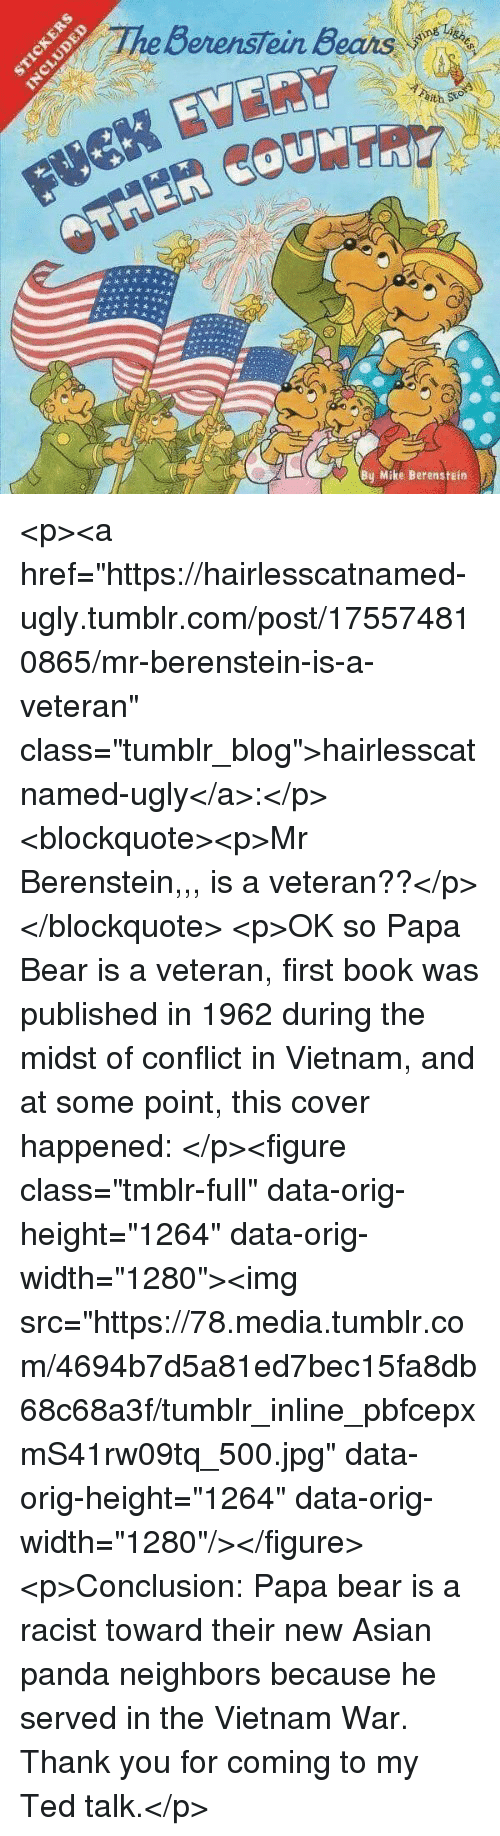 """Asian, Ted, and Tumblr: BerensTein Bears  ith  By Mike Berenstein <p><a href=""""https://hairlesscatnamed-ugly.tumblr.com/post/175574810865/mr-berenstein-is-a-veteran"""" class=""""tumblr_blog"""">hairlesscatnamed-ugly</a>:</p>  <blockquote><p>Mr Berenstein,,, is a veteran??</p></blockquote>  <p>OK so Papa Bear is a veteran, first book was published in 1962 during the midst of conflict in Vietnam, and at some point, this cover happened: </p><figure class=""""tmblr-full"""" data-orig-height=""""1264"""" data-orig-width=""""1280""""><img src=""""https://78.media.tumblr.com/4694b7d5a81ed7bec15fa8db68c68a3f/tumblr_inline_pbfcepxmS41rw09tq_500.jpg"""" data-orig-height=""""1264"""" data-orig-width=""""1280""""/></figure><p>Conclusion: Papa bear is a racist toward their new Asian panda neighbors because he served in the Vietnam War. Thank you for coming to my Ted talk.</p>"""